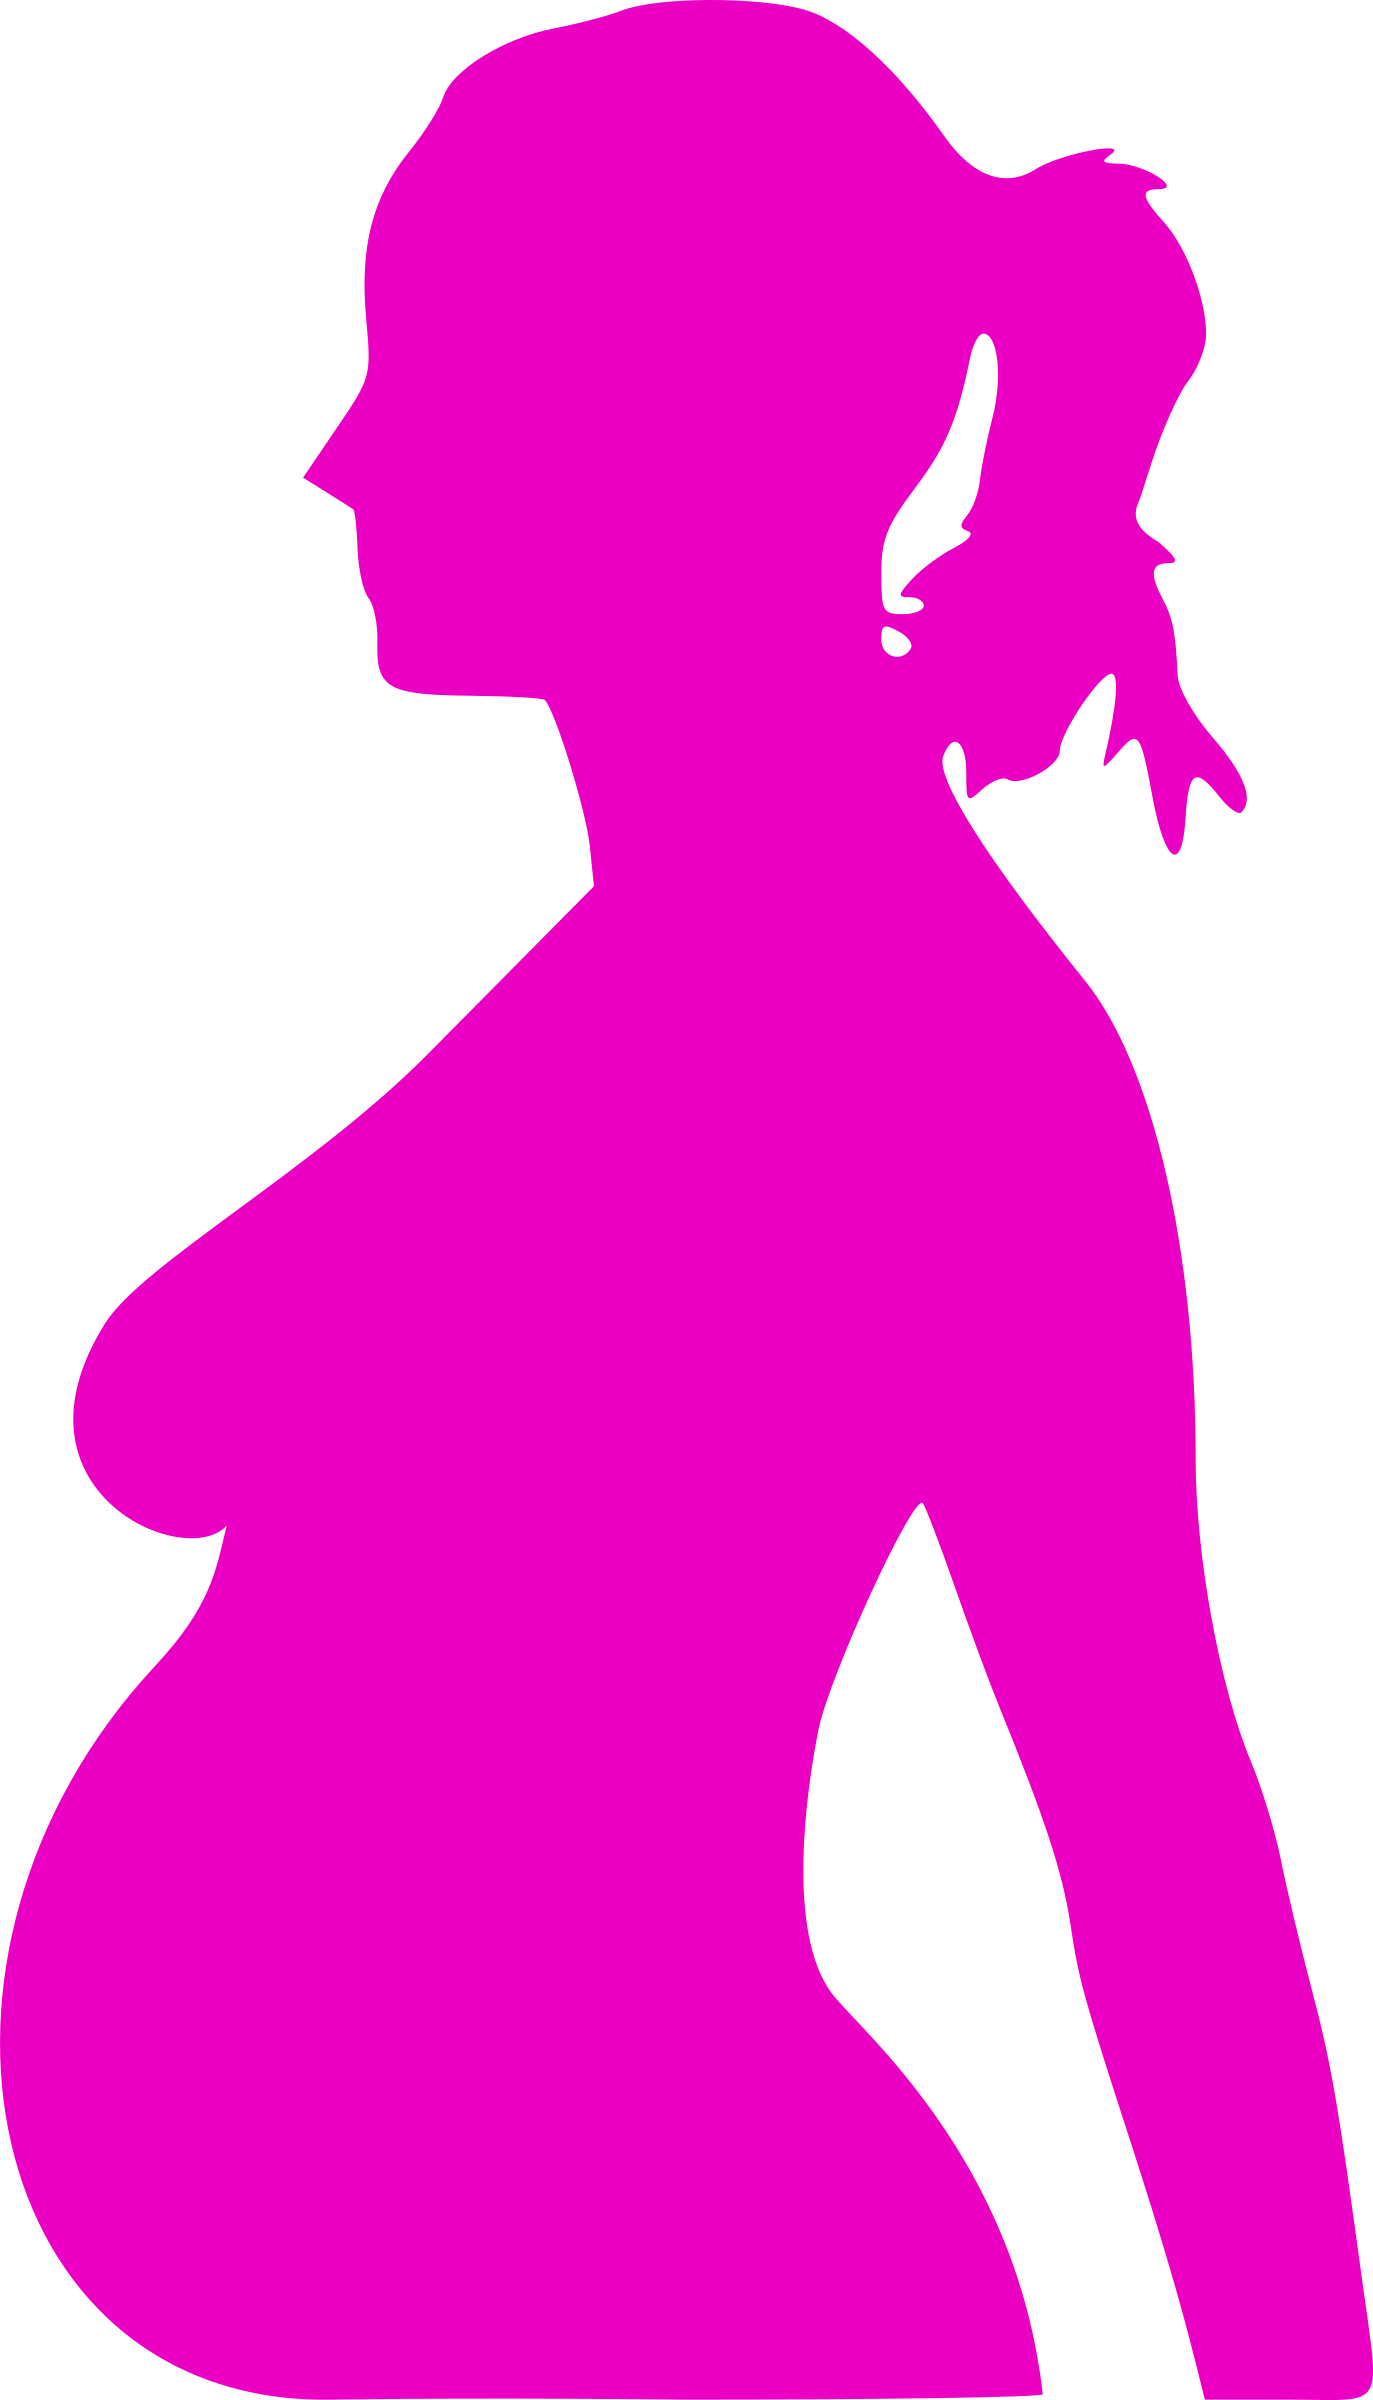 Mother clipart pregnant lady. Pregnancy silhouet big image